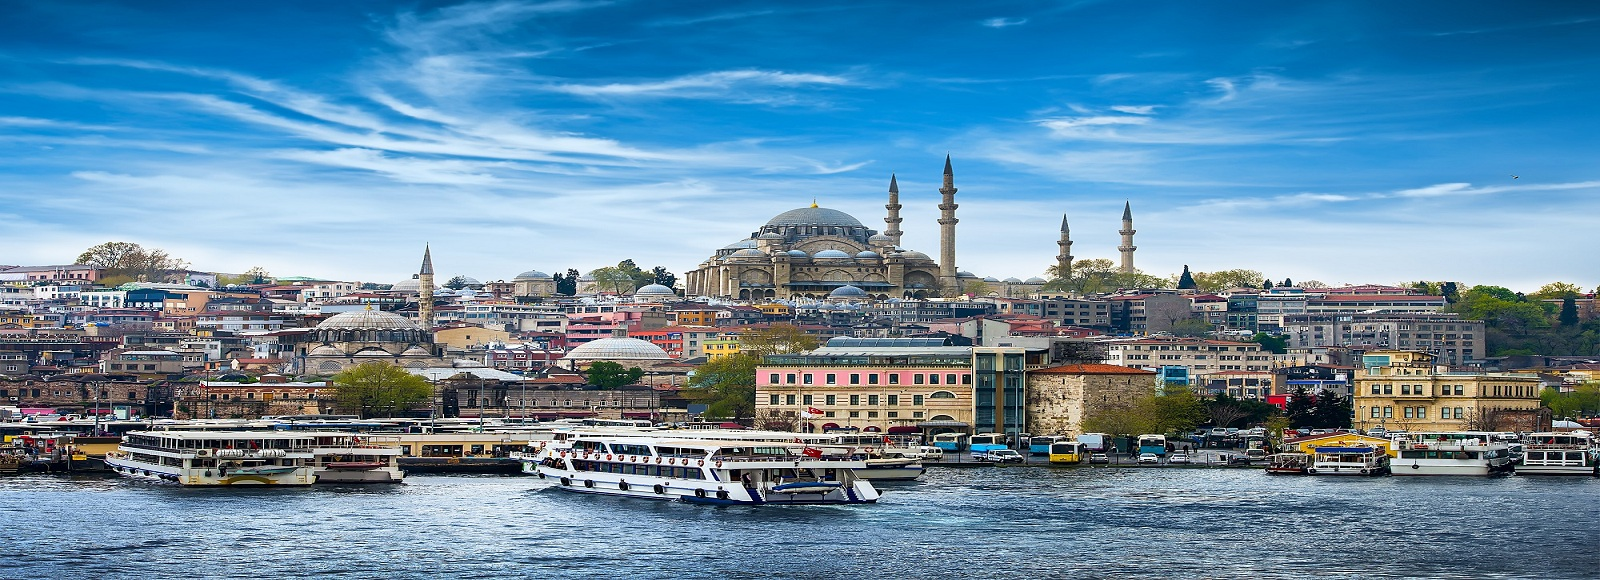 Cheap Flight Fares to Istanbul. Flight Tickets Discounts to Istanbul